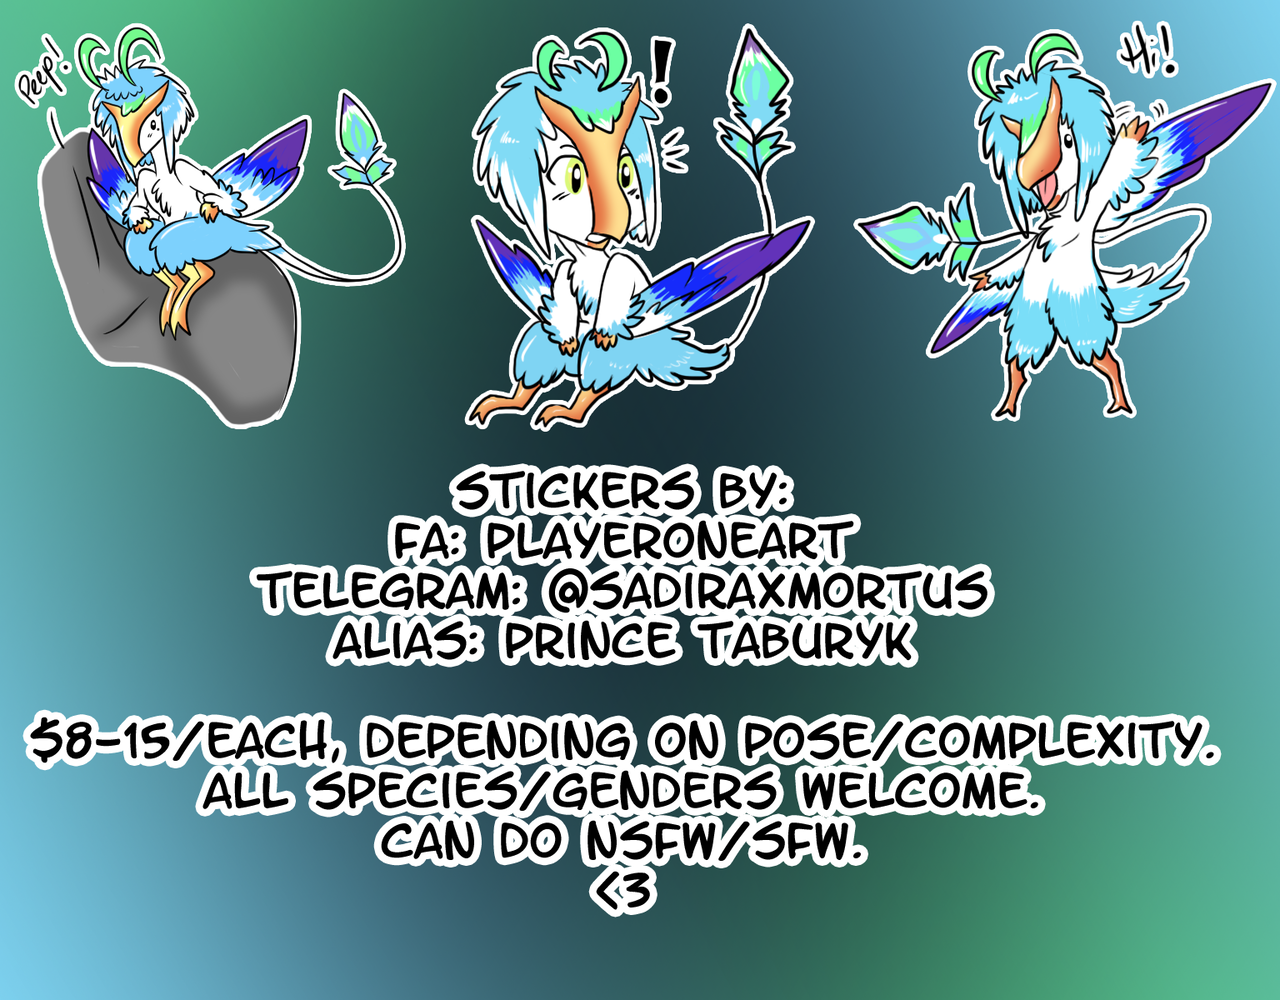 Stickers (Telegram) by PlayerOneArt - Commiss io